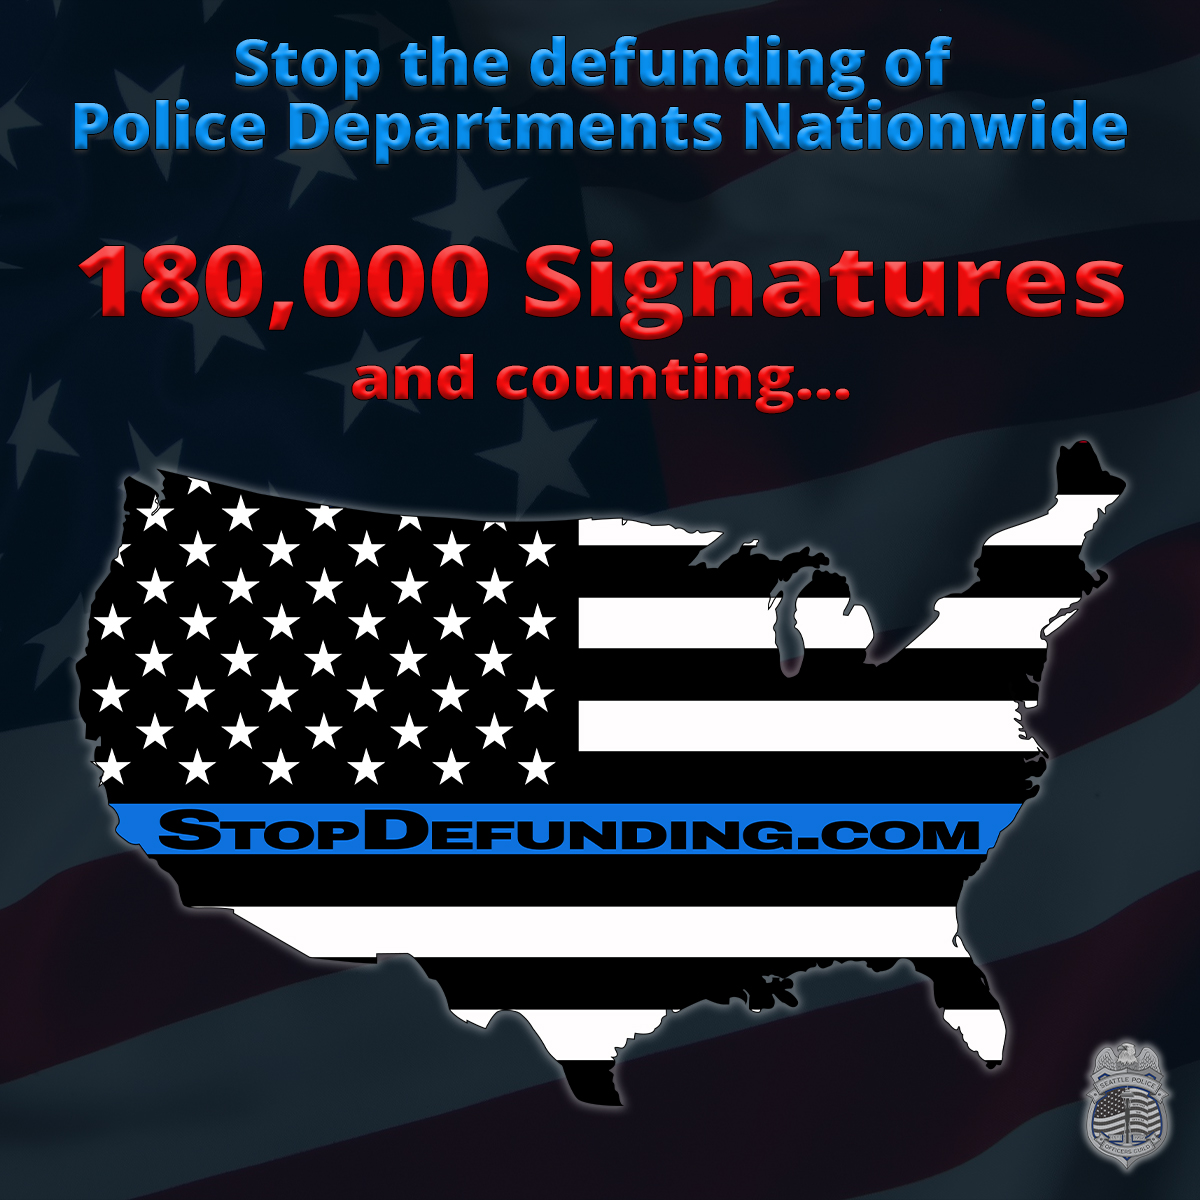 180,000 Signatures and Counting! Please sign and share our nationwide petition to support law enforcement and protect public safety.  https://t.co/n1DBaKqz4P https://t.co/2OVGGxirF2